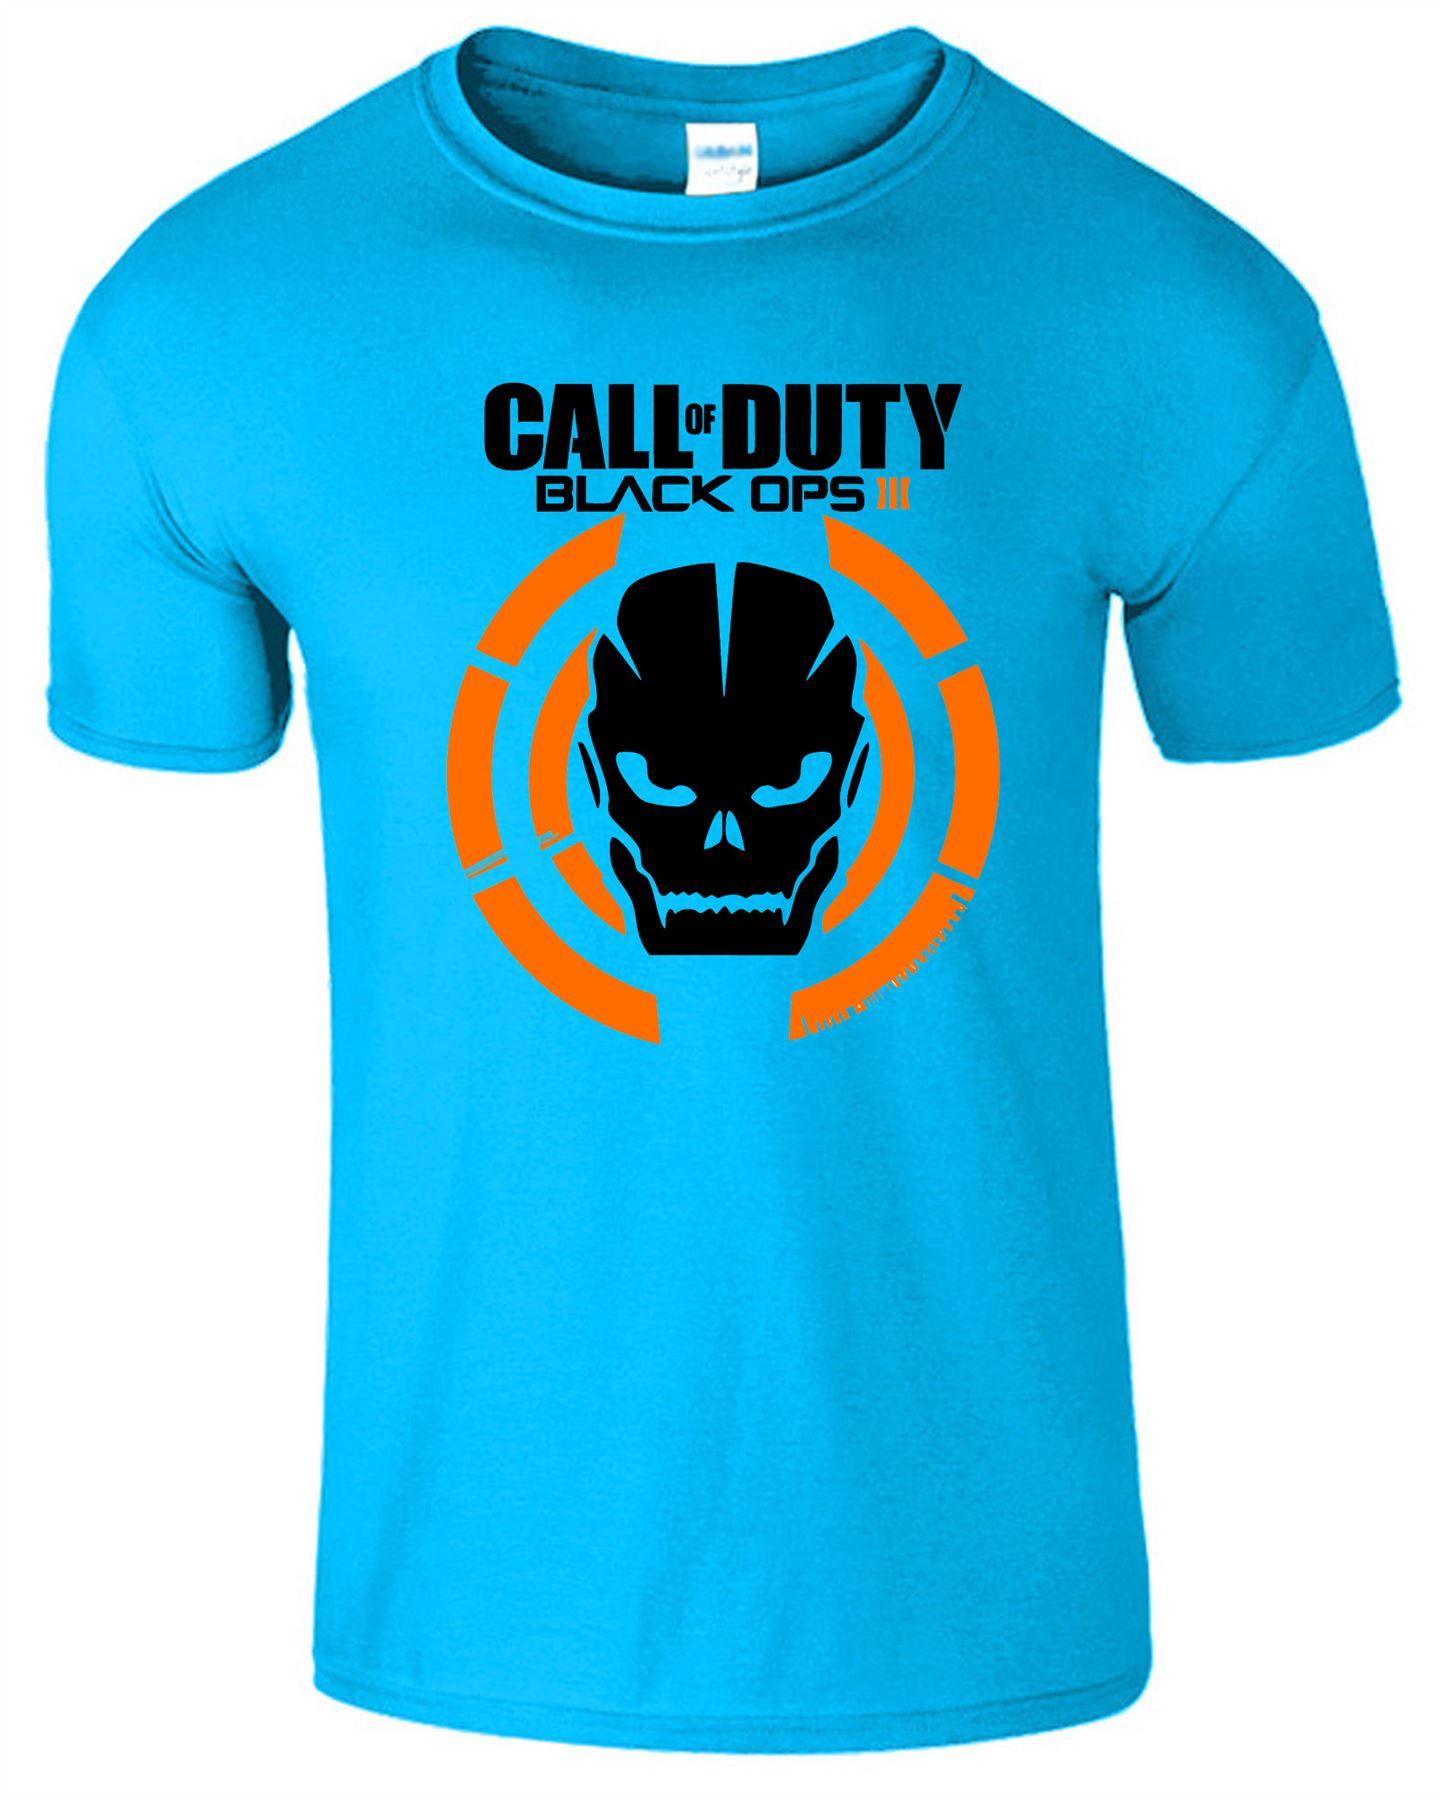 Duty-Black-Ops-Xbox-PS3-PS4-Game-Logo-With-Skull-Mens-Tshirt-Tee-Top-Gift miniatuur 14